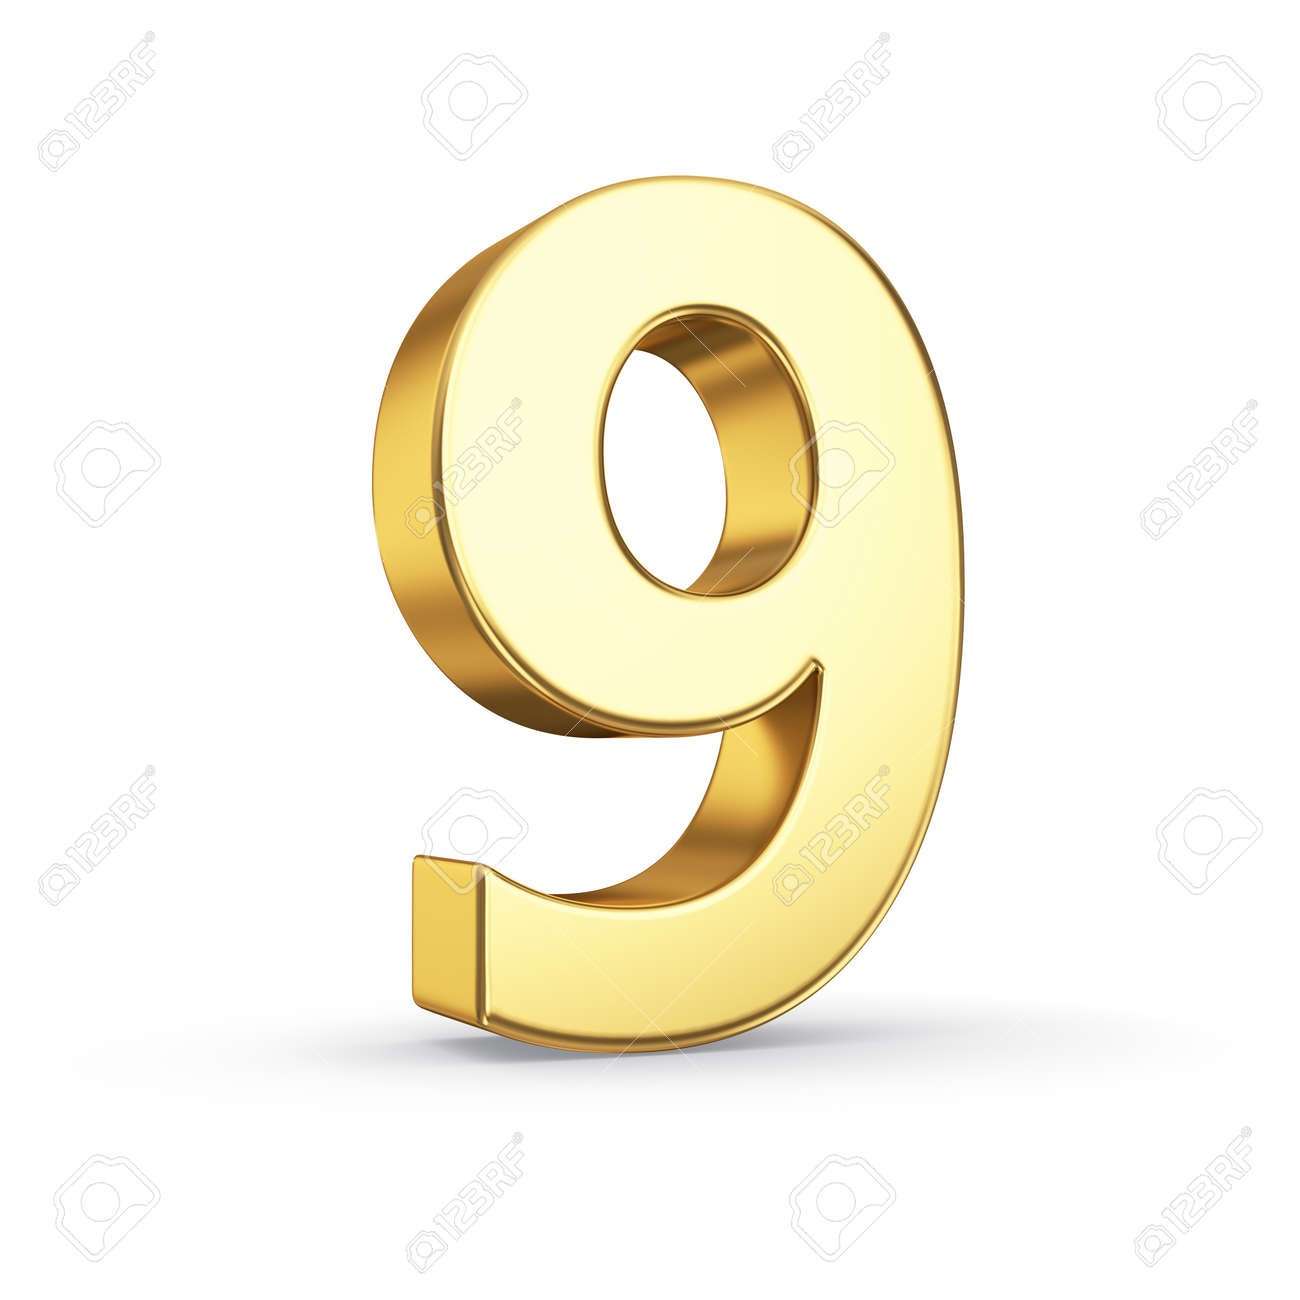 3D golden number 9 - isolated with clipping path - 21092472